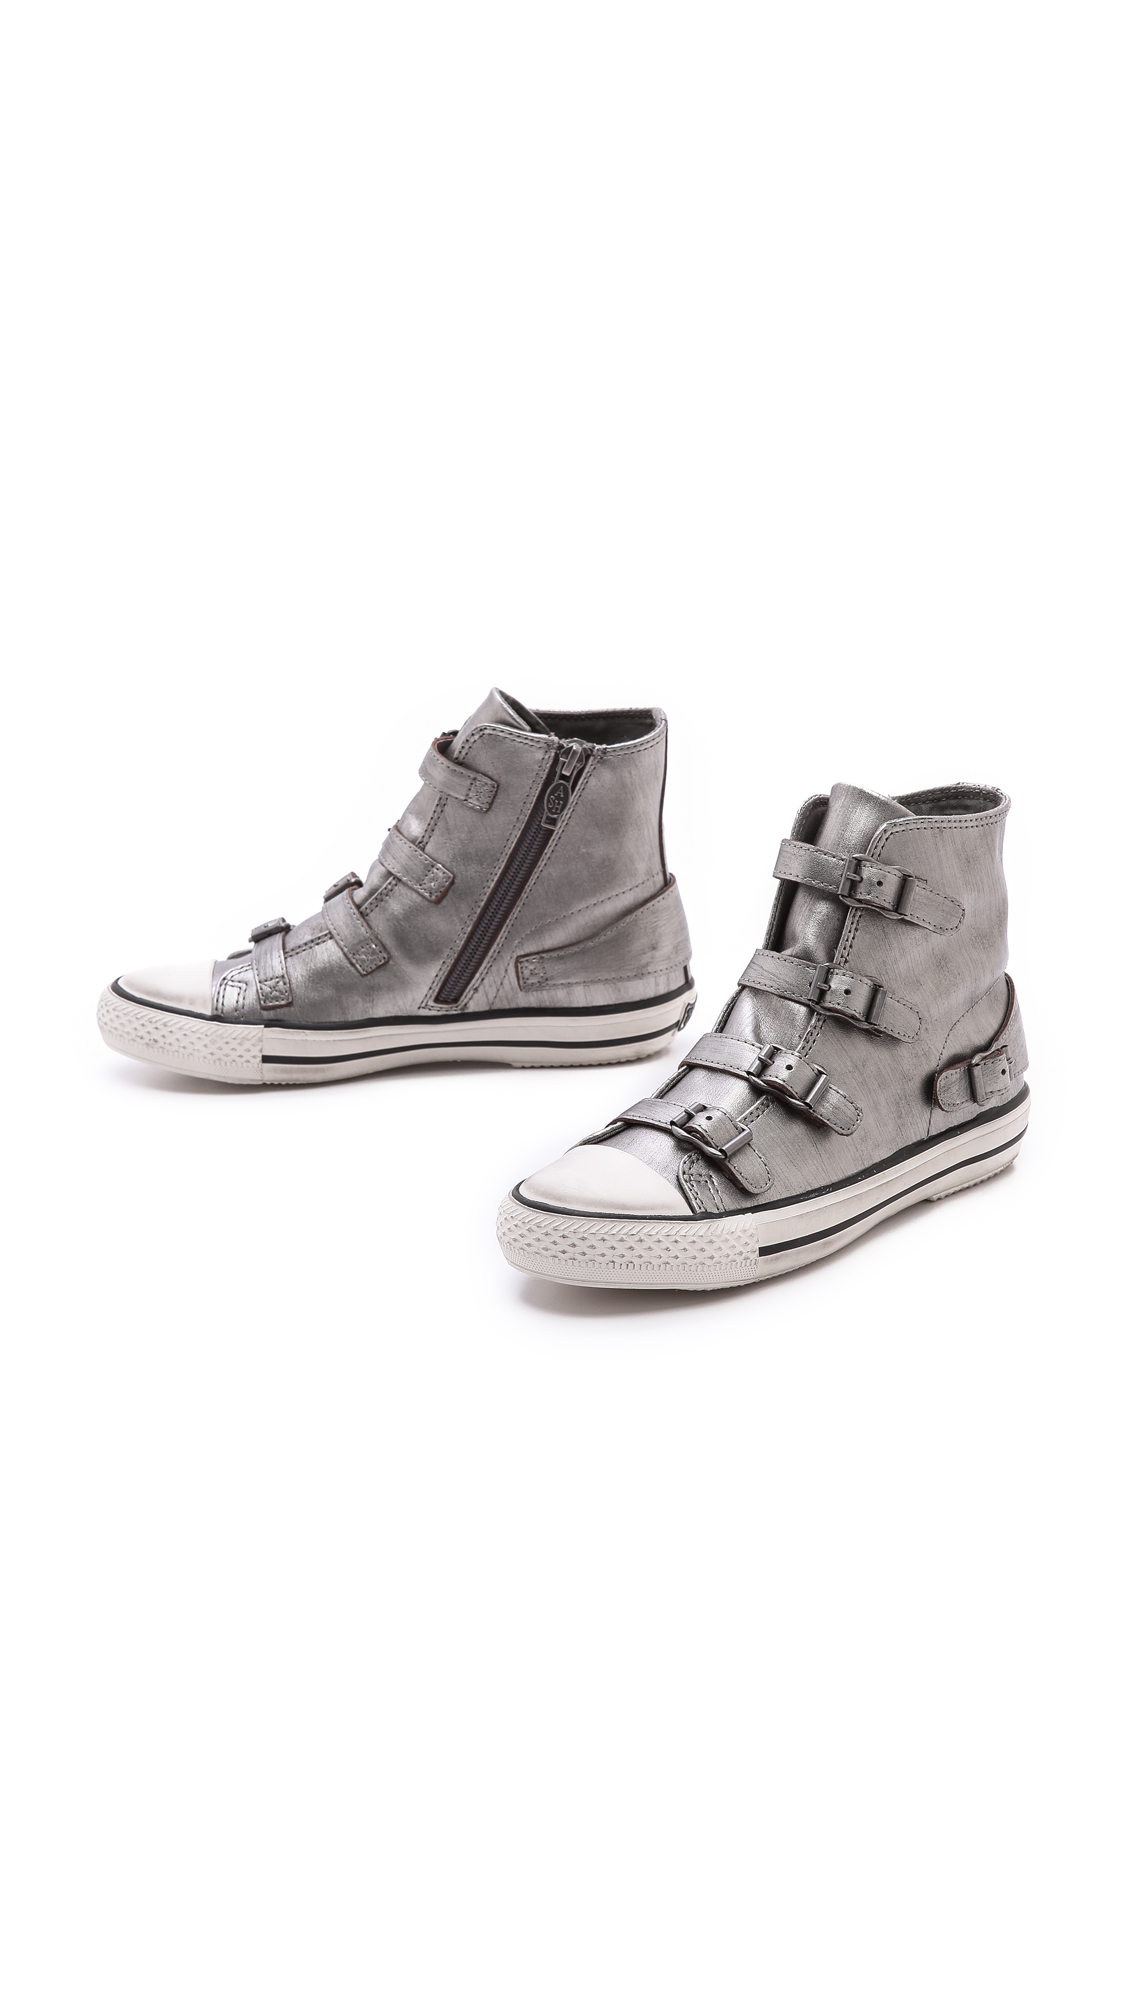 lyst ash virgin high top sneakers in gray. Black Bedroom Furniture Sets. Home Design Ideas